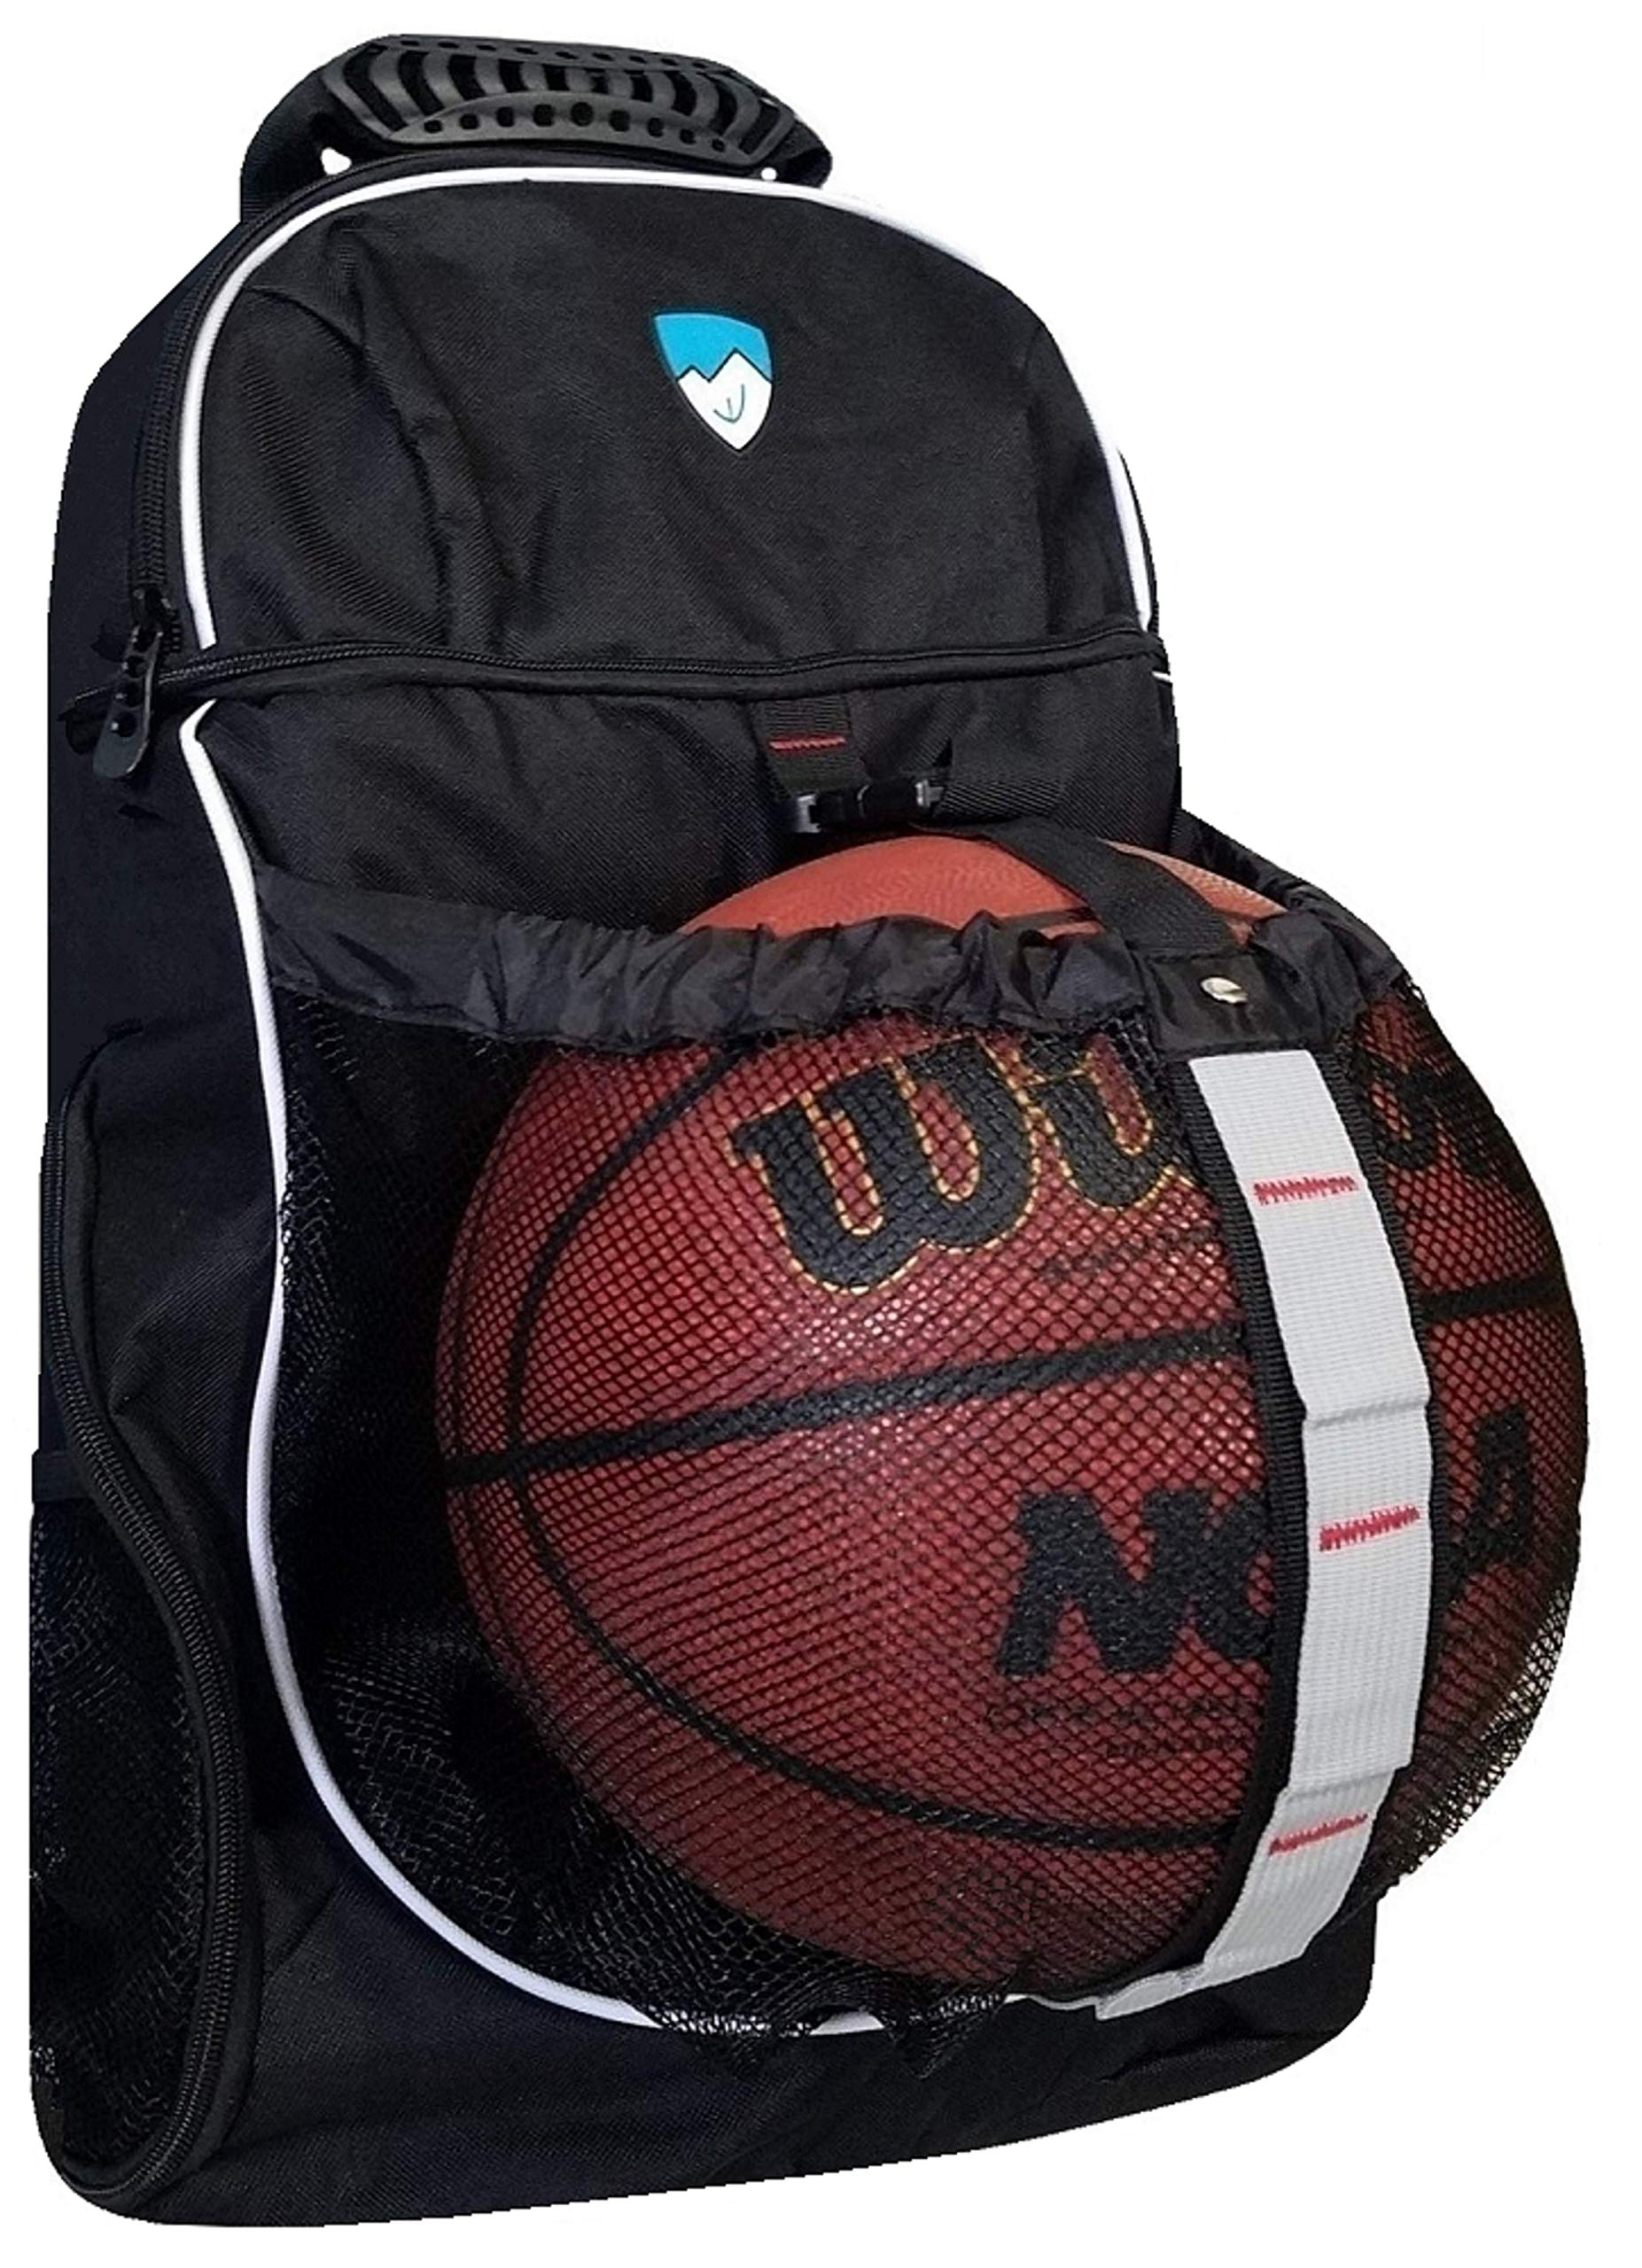 Hard Work Sports Basketball Backpack, Soccer Bag with Ball Compartment Unisex One Size